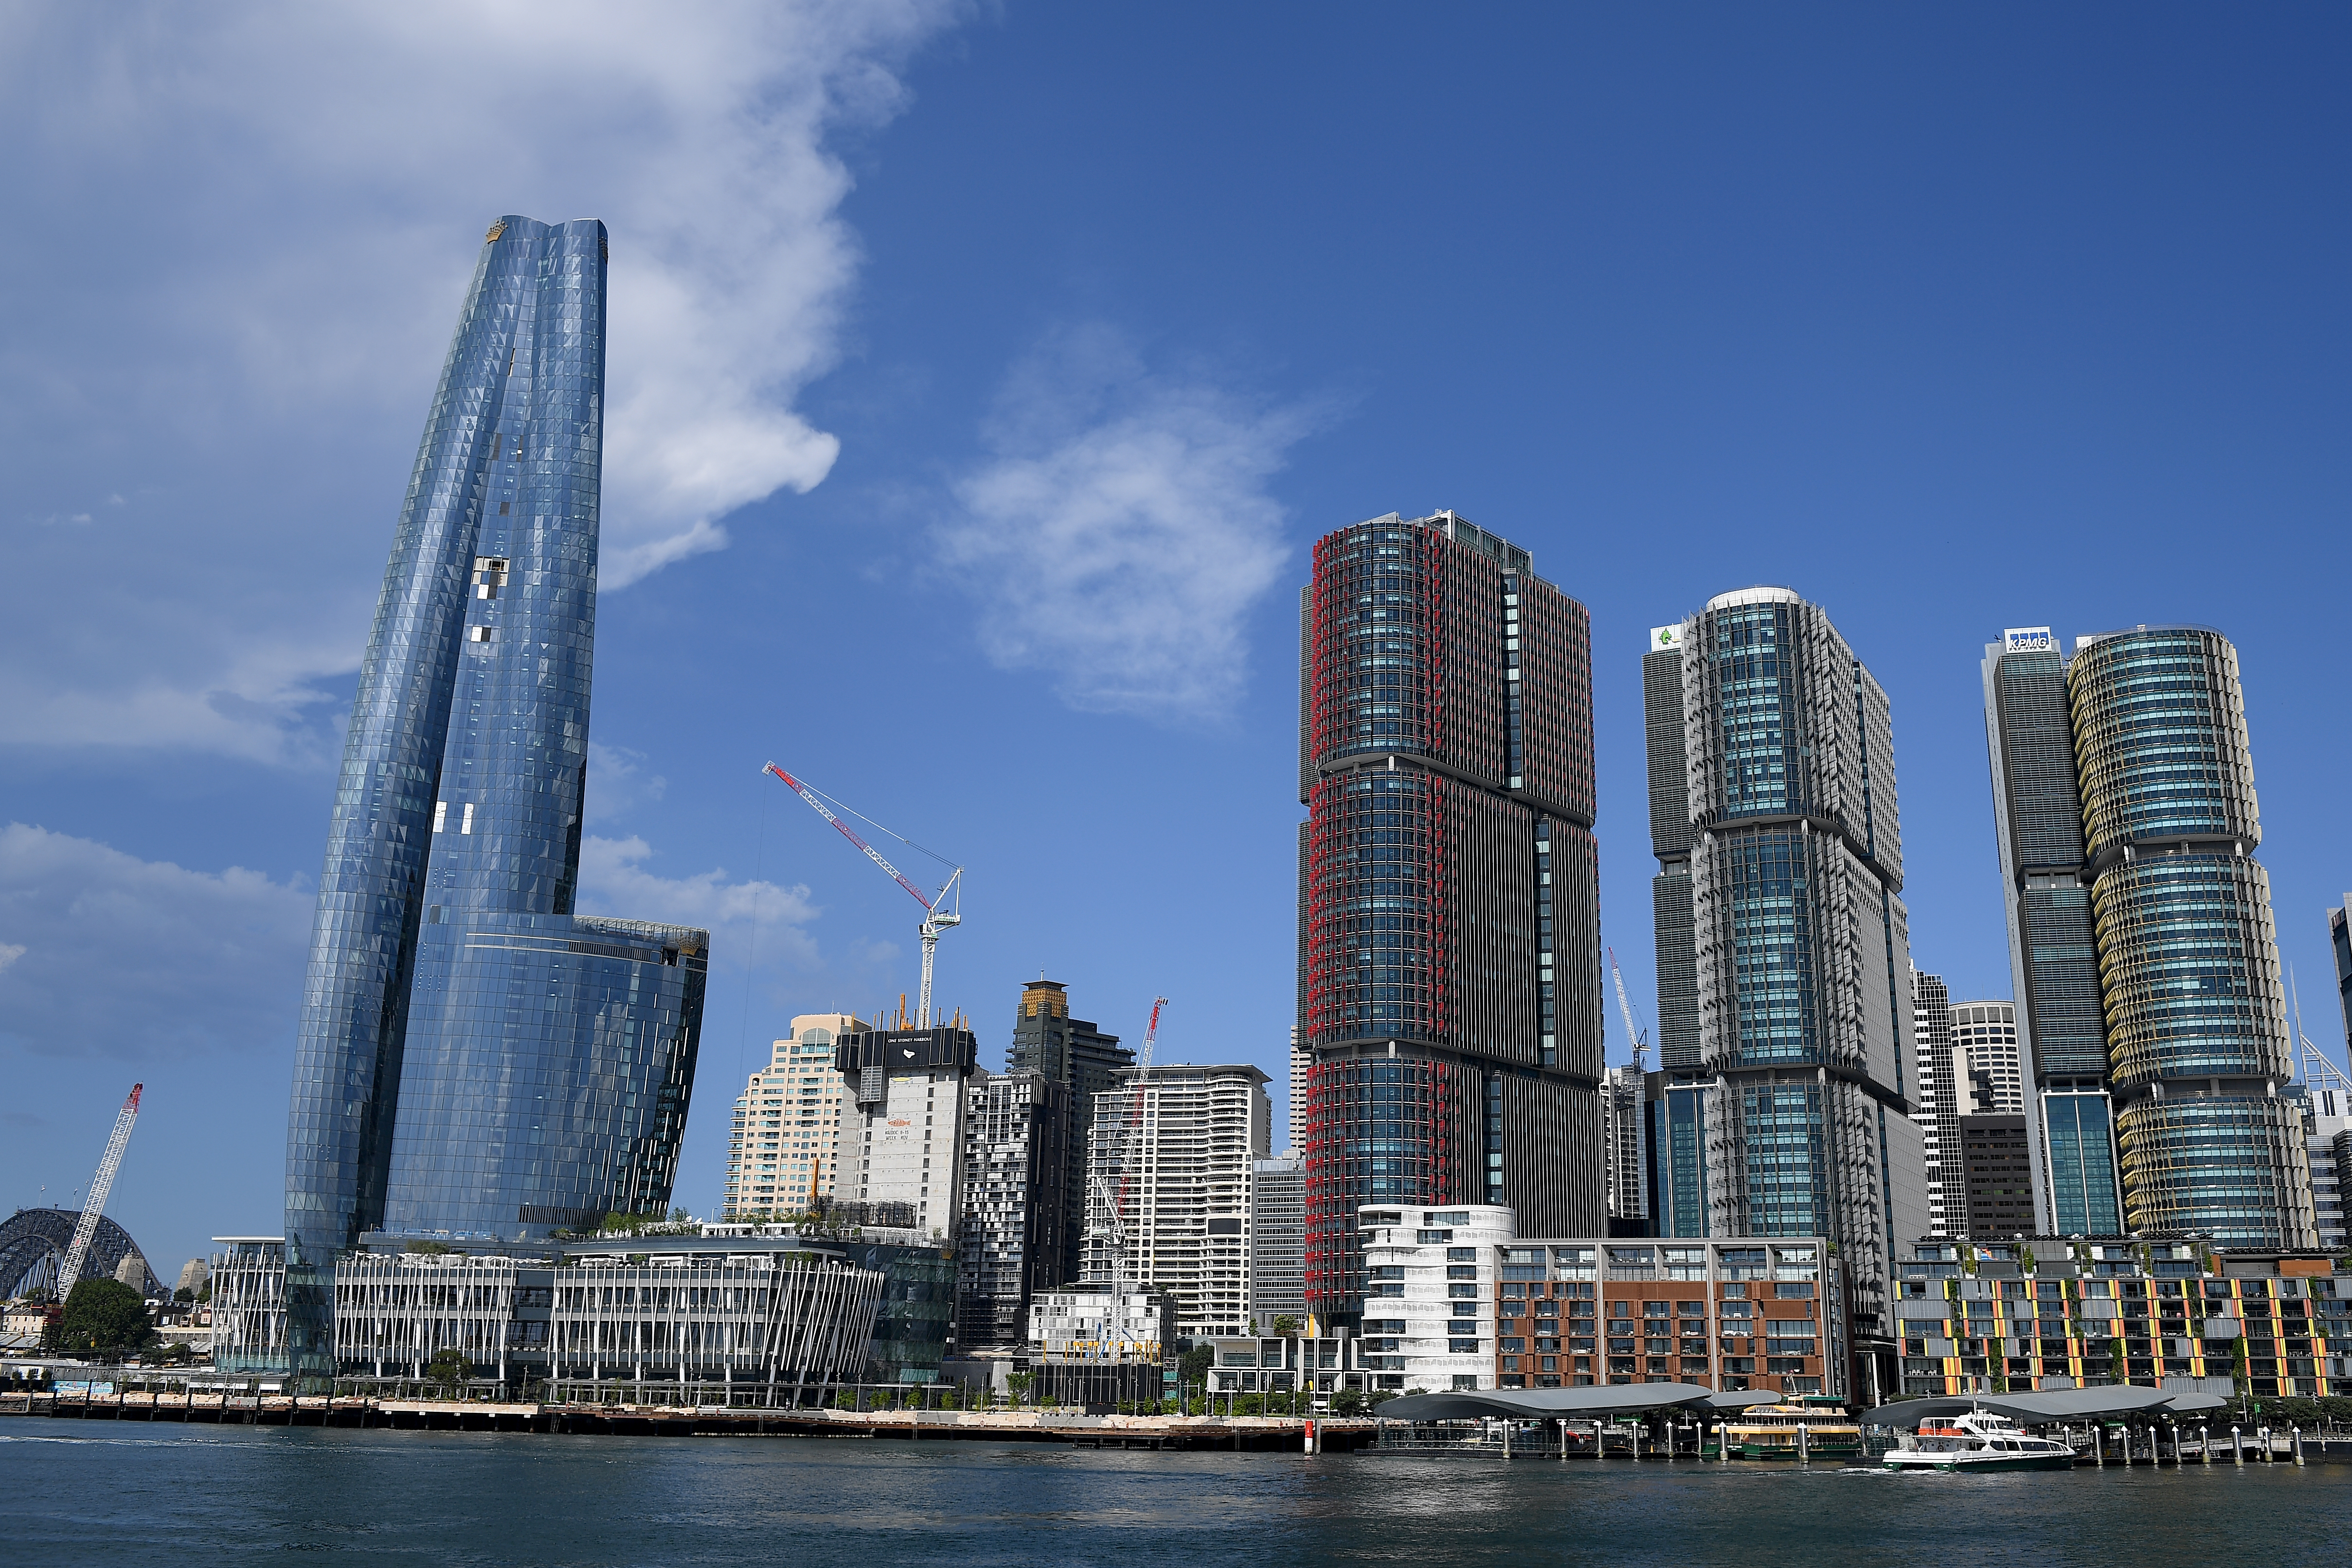 How Sydney's Barangaroo tower paved the way for a culture of closed-door deals